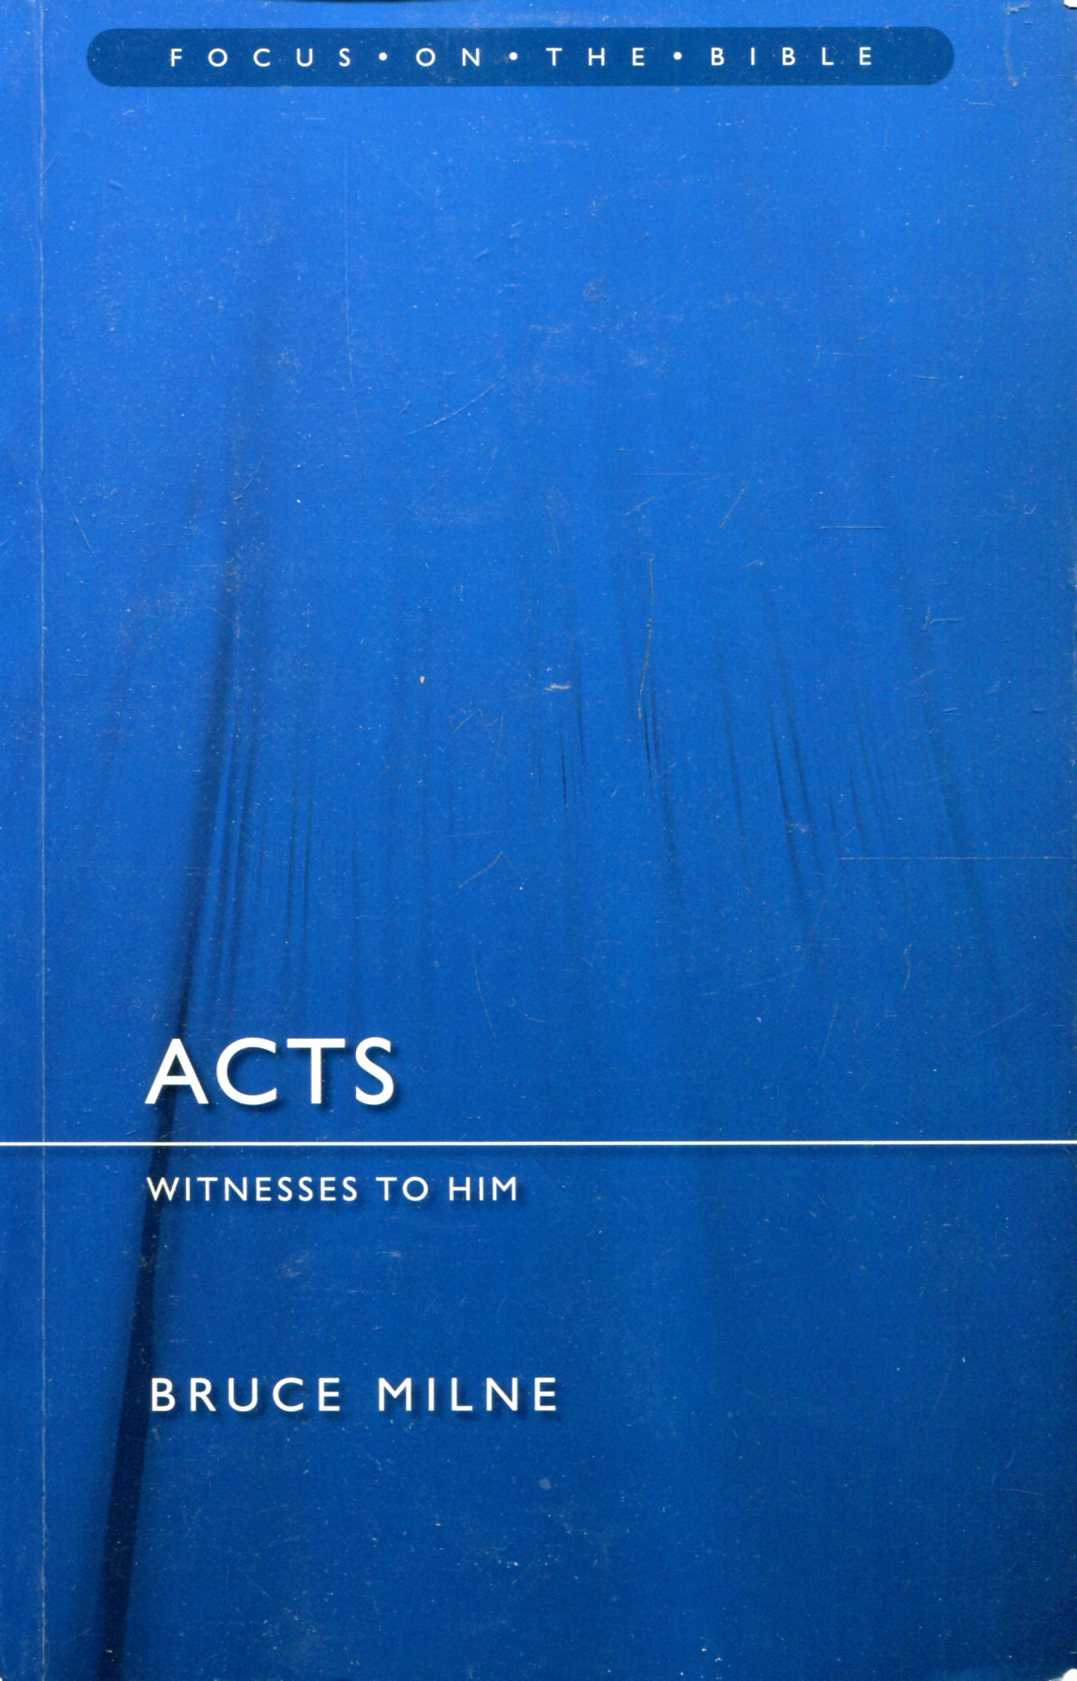 Image for Acts: Witnesses to Him (Focus on the Bible)